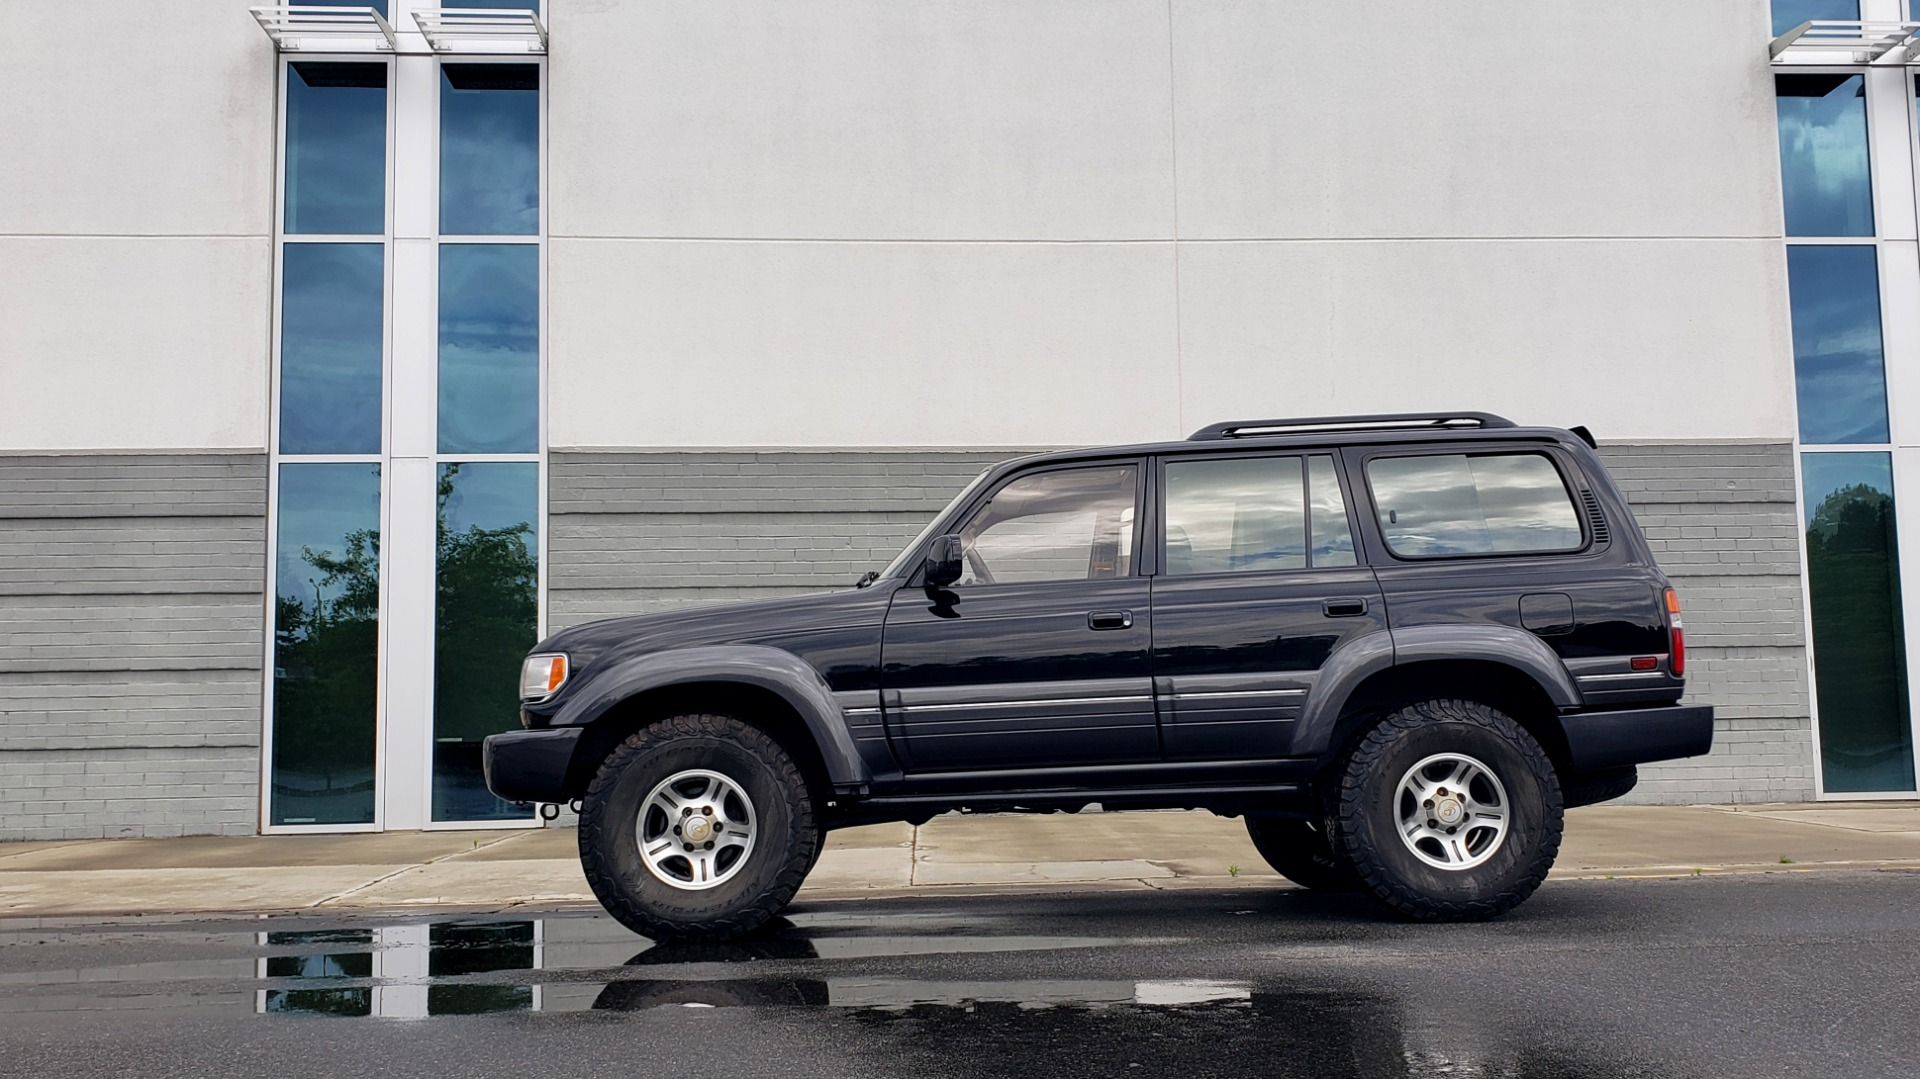 Used 1996 Lexus LX 450 AWD / 4.5L 6-CYL / 4-SPD AUTO / RUNNING BOARDS / NEW BFG TIRES for sale $49,995 at Formula Imports in Charlotte NC 28227 4